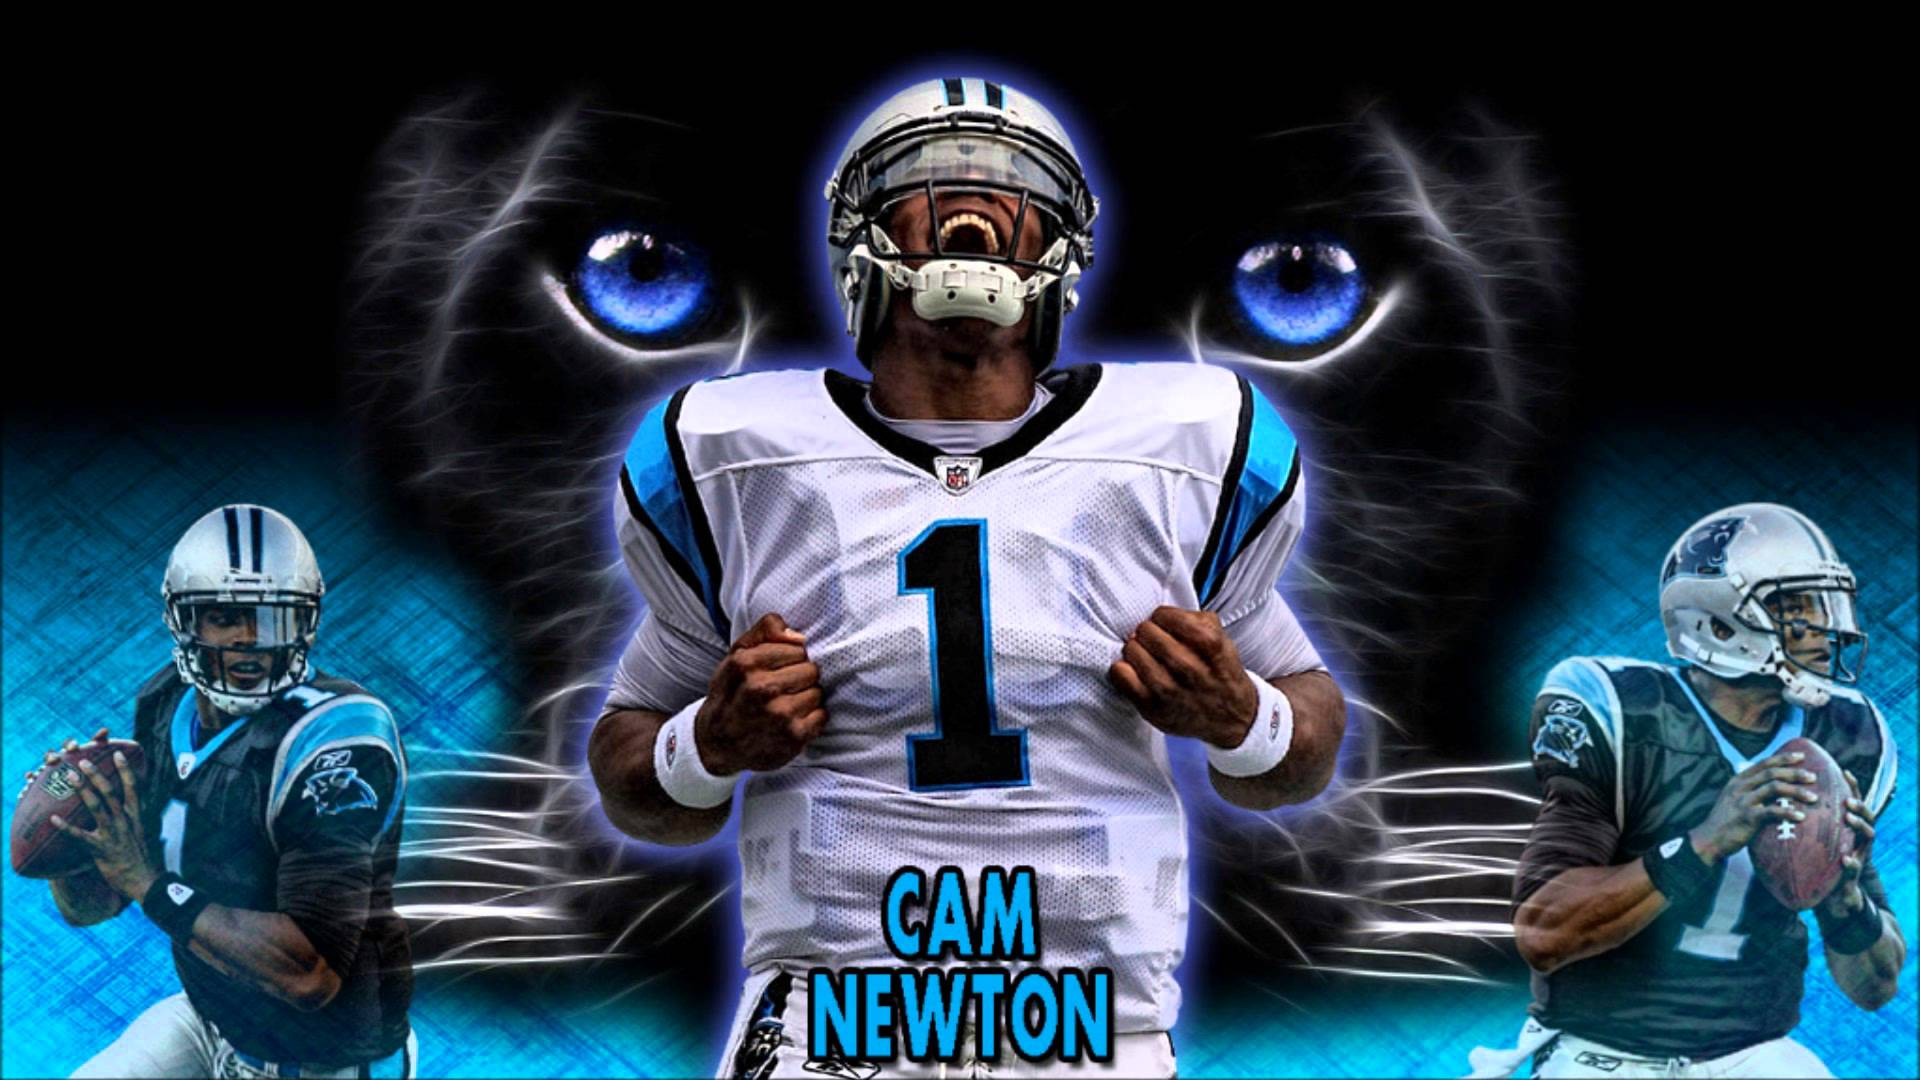 FREE NFL Cam Newton Wallpapers